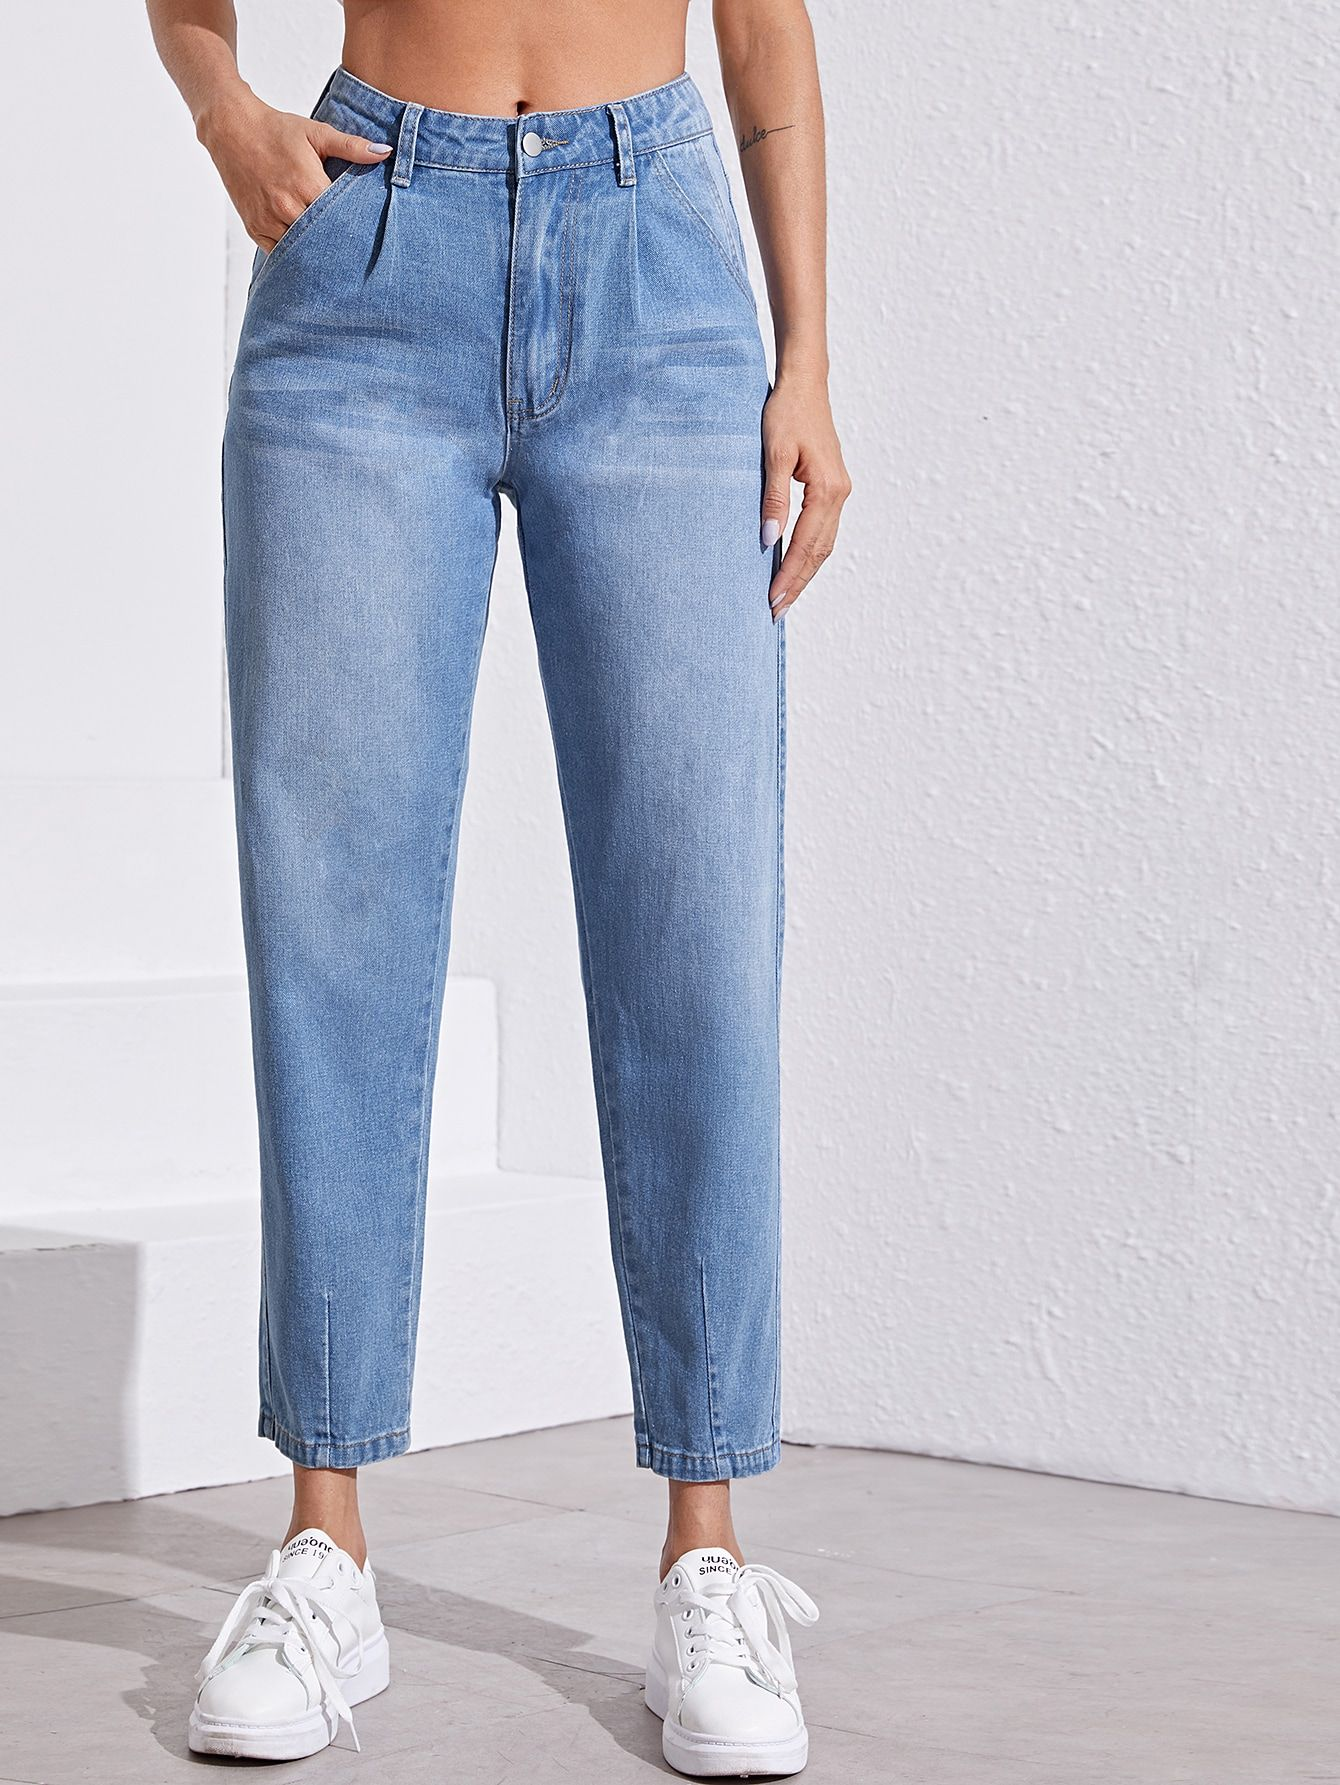 Ad Light Wash Mom Jeans Tags Casual Blue Pastel Plain Button Pocket Zipper Washed Long Tapered Carrot 85 Cotto Vaqueros De Mama Moda De Ropa Ropa